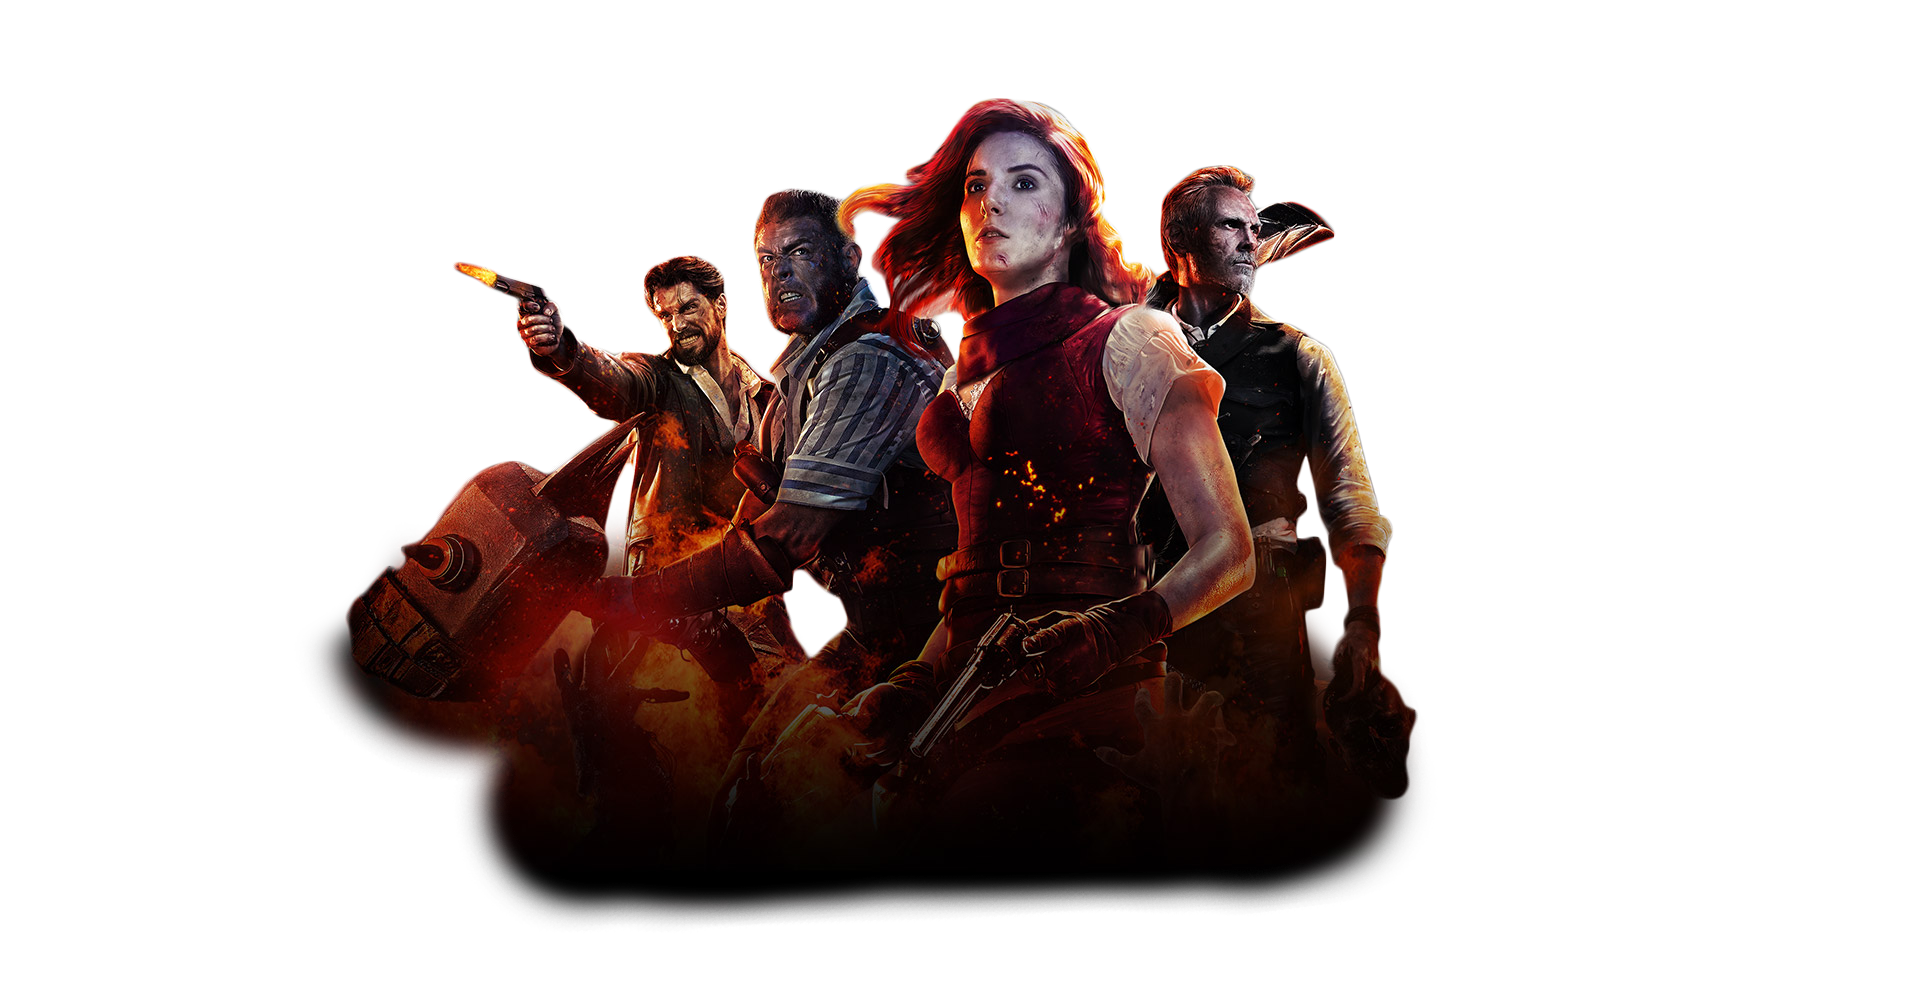 Black Ops 4 Zombie Mode Front Image PNG Image.